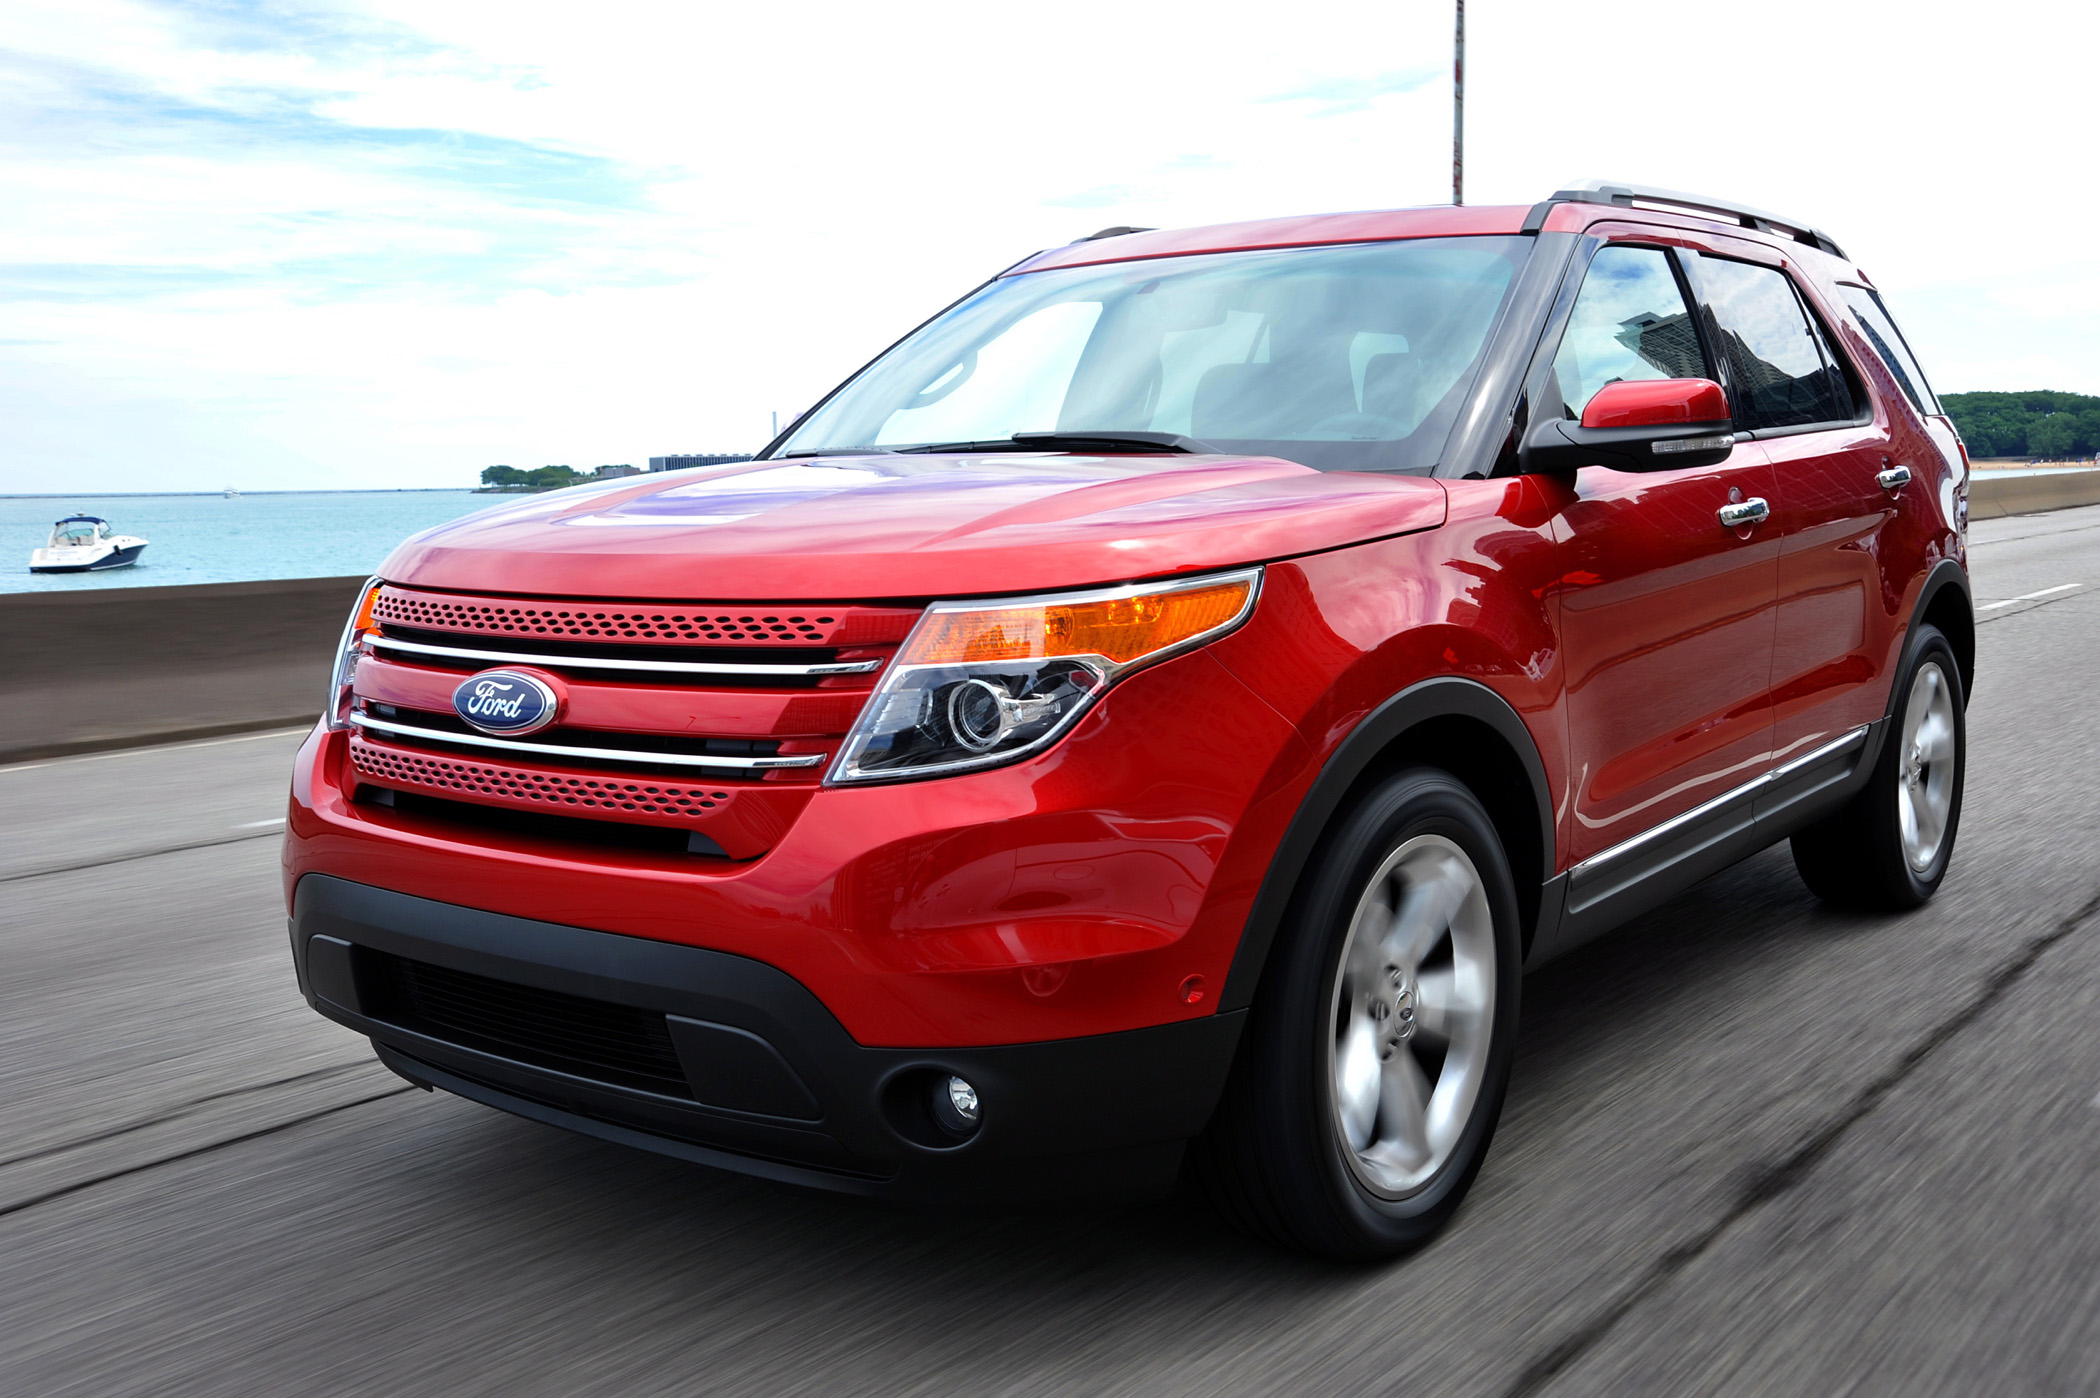 2011 Ford Explorer a Crossover Vehicle to Match Driver Demands New